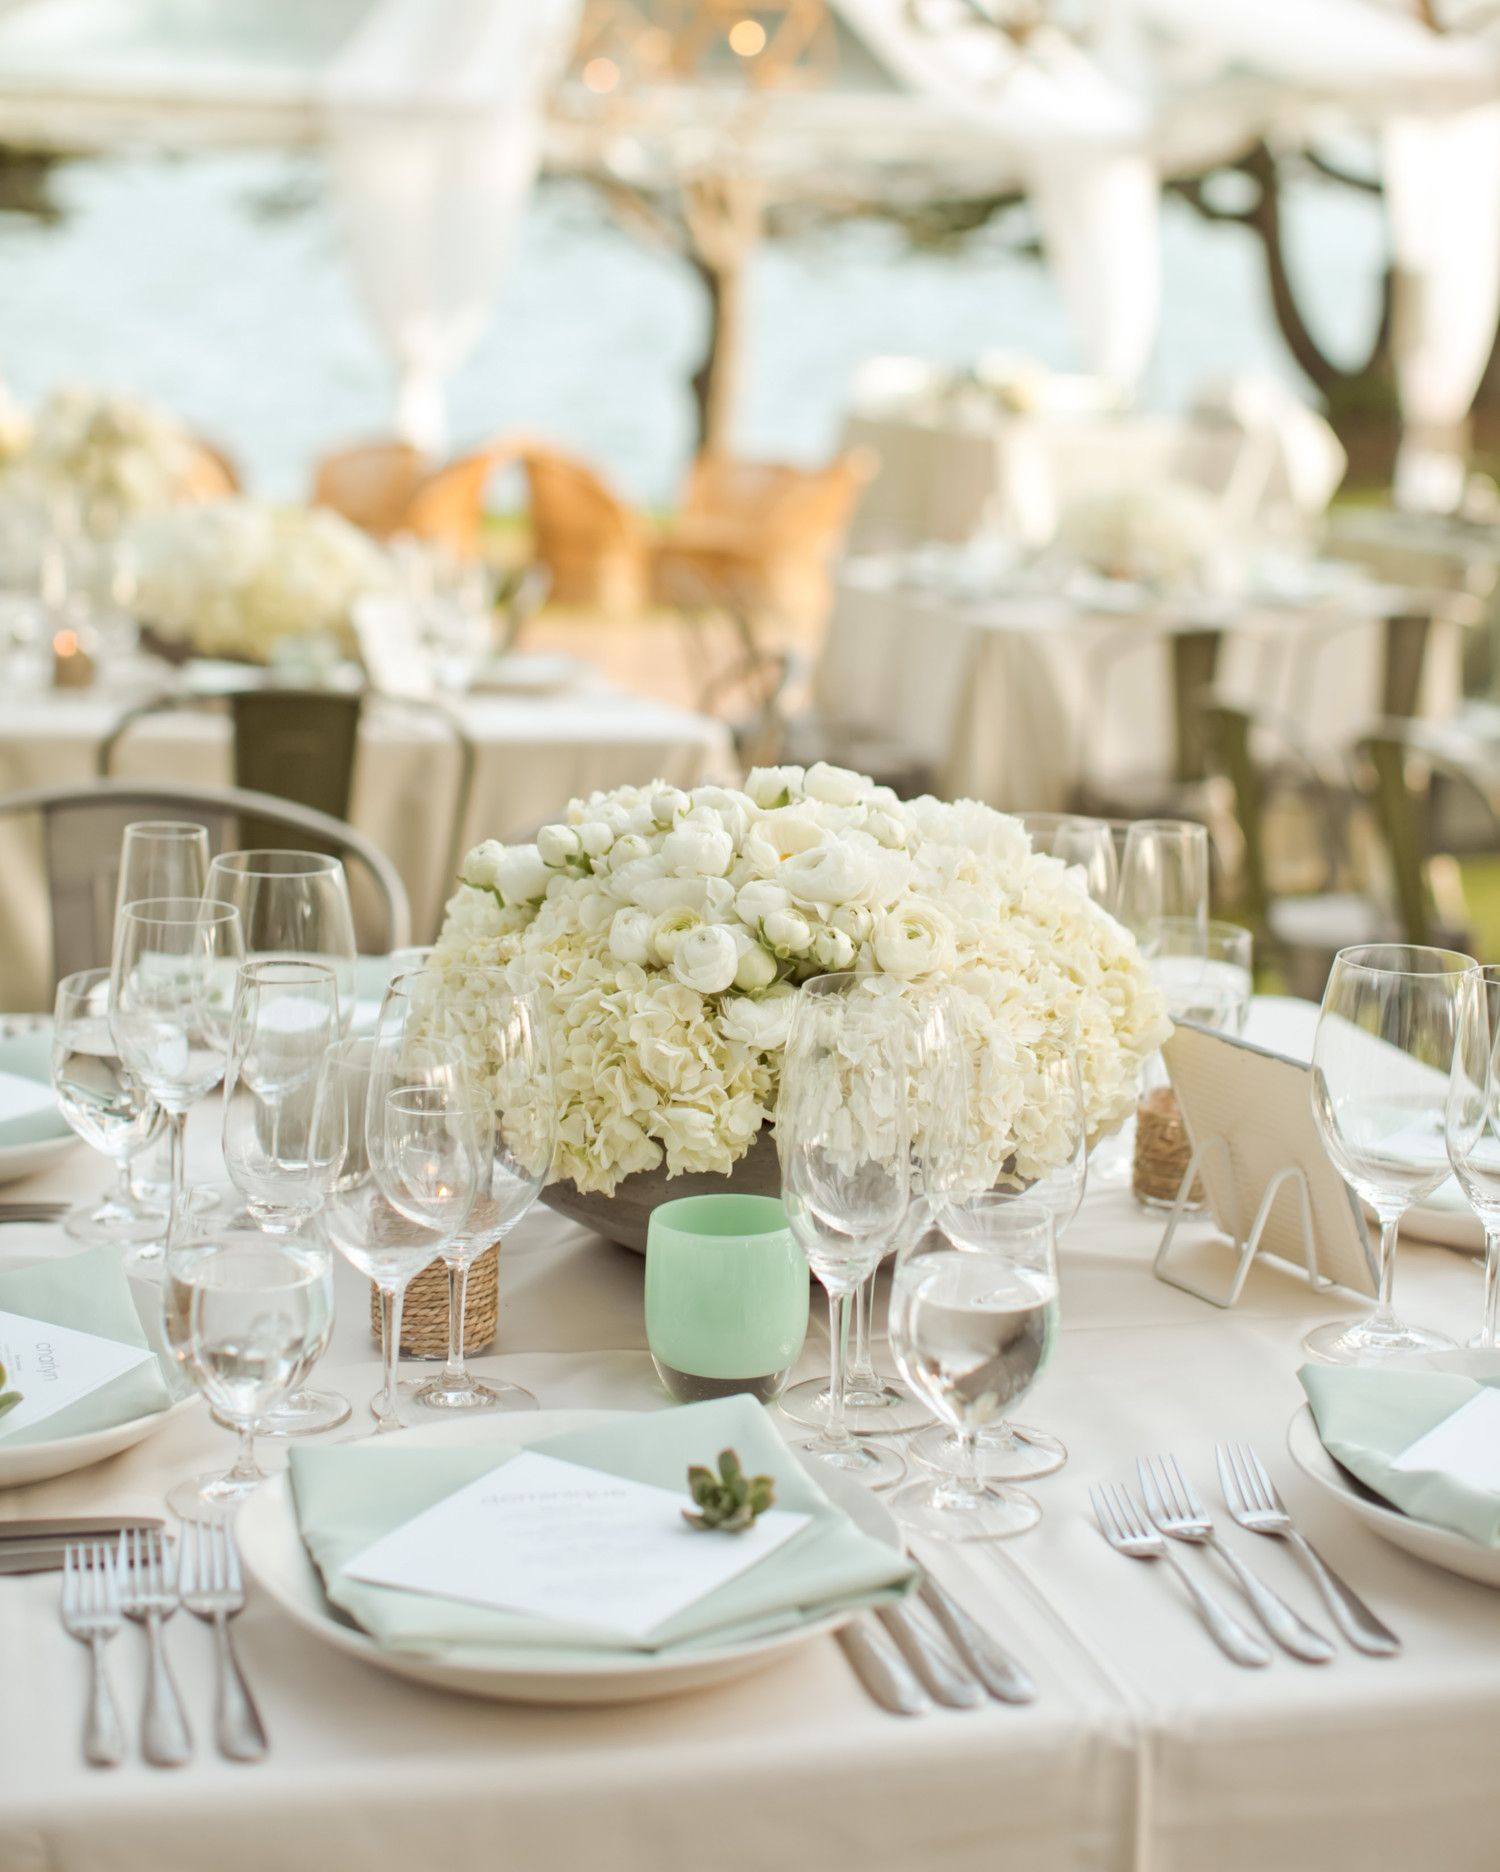 40 of Our Favorite Floral Wedding Centerpieces | Pinterest | White ...